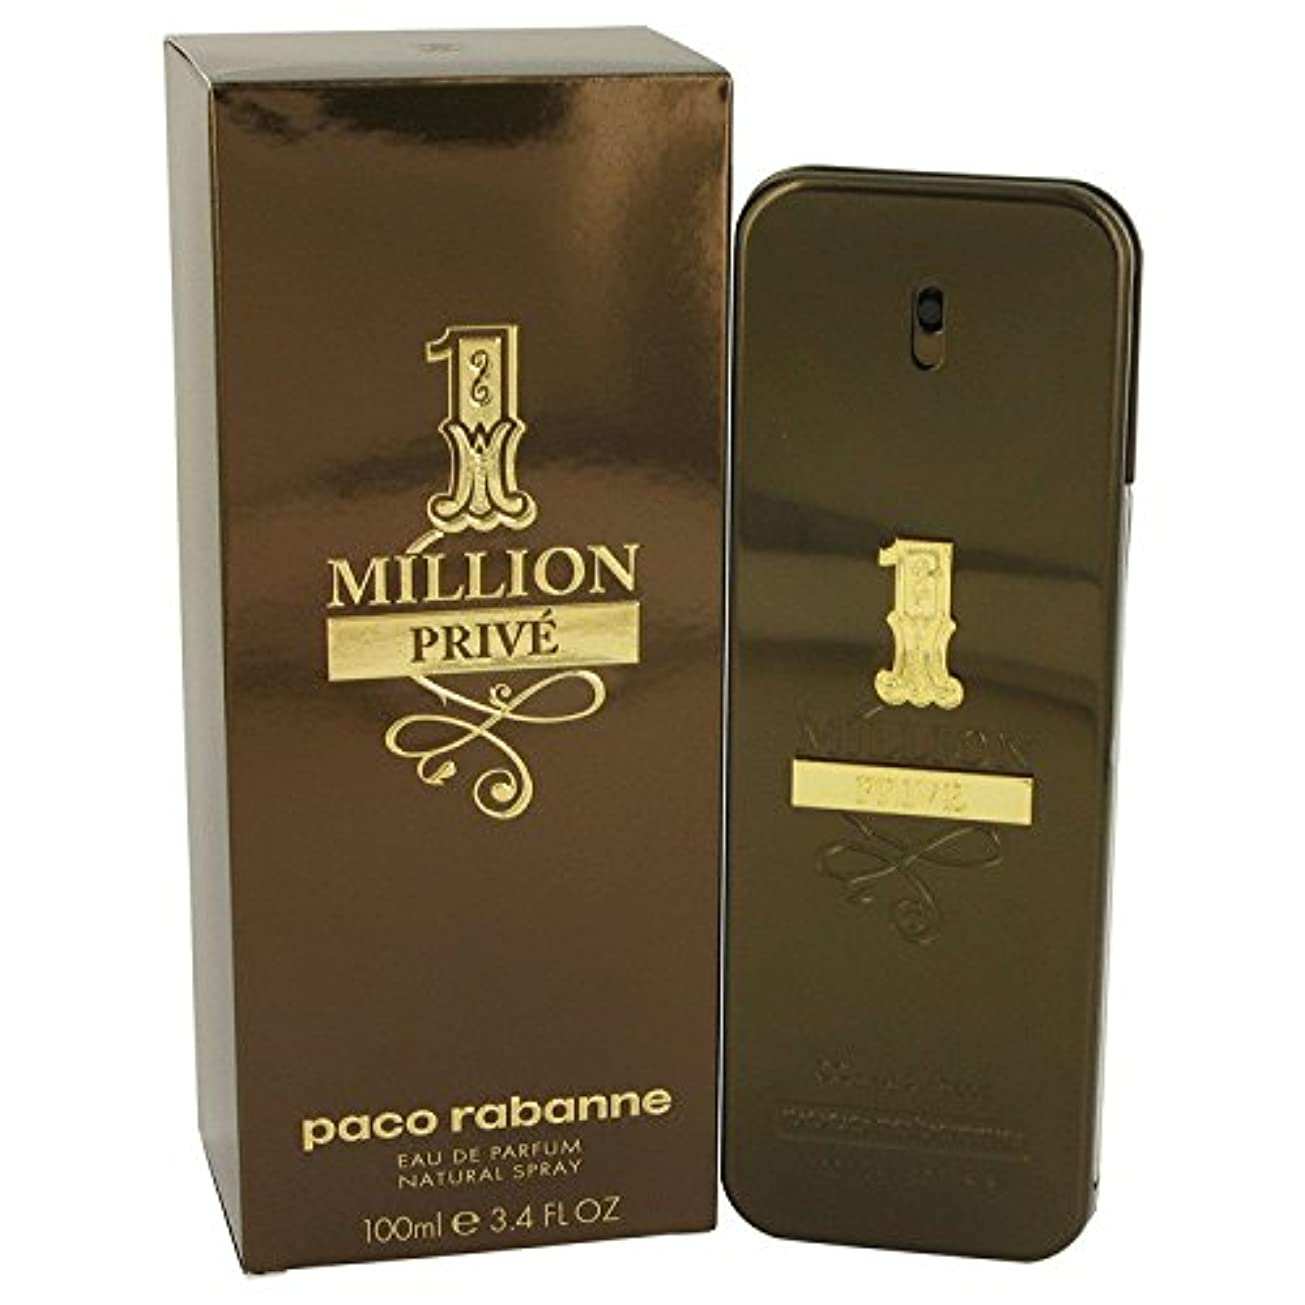 衝撃頭痛空白1 Million Prive by Paco Rabanne Eau De Parfum Spray 100 ml [並行輸入品]